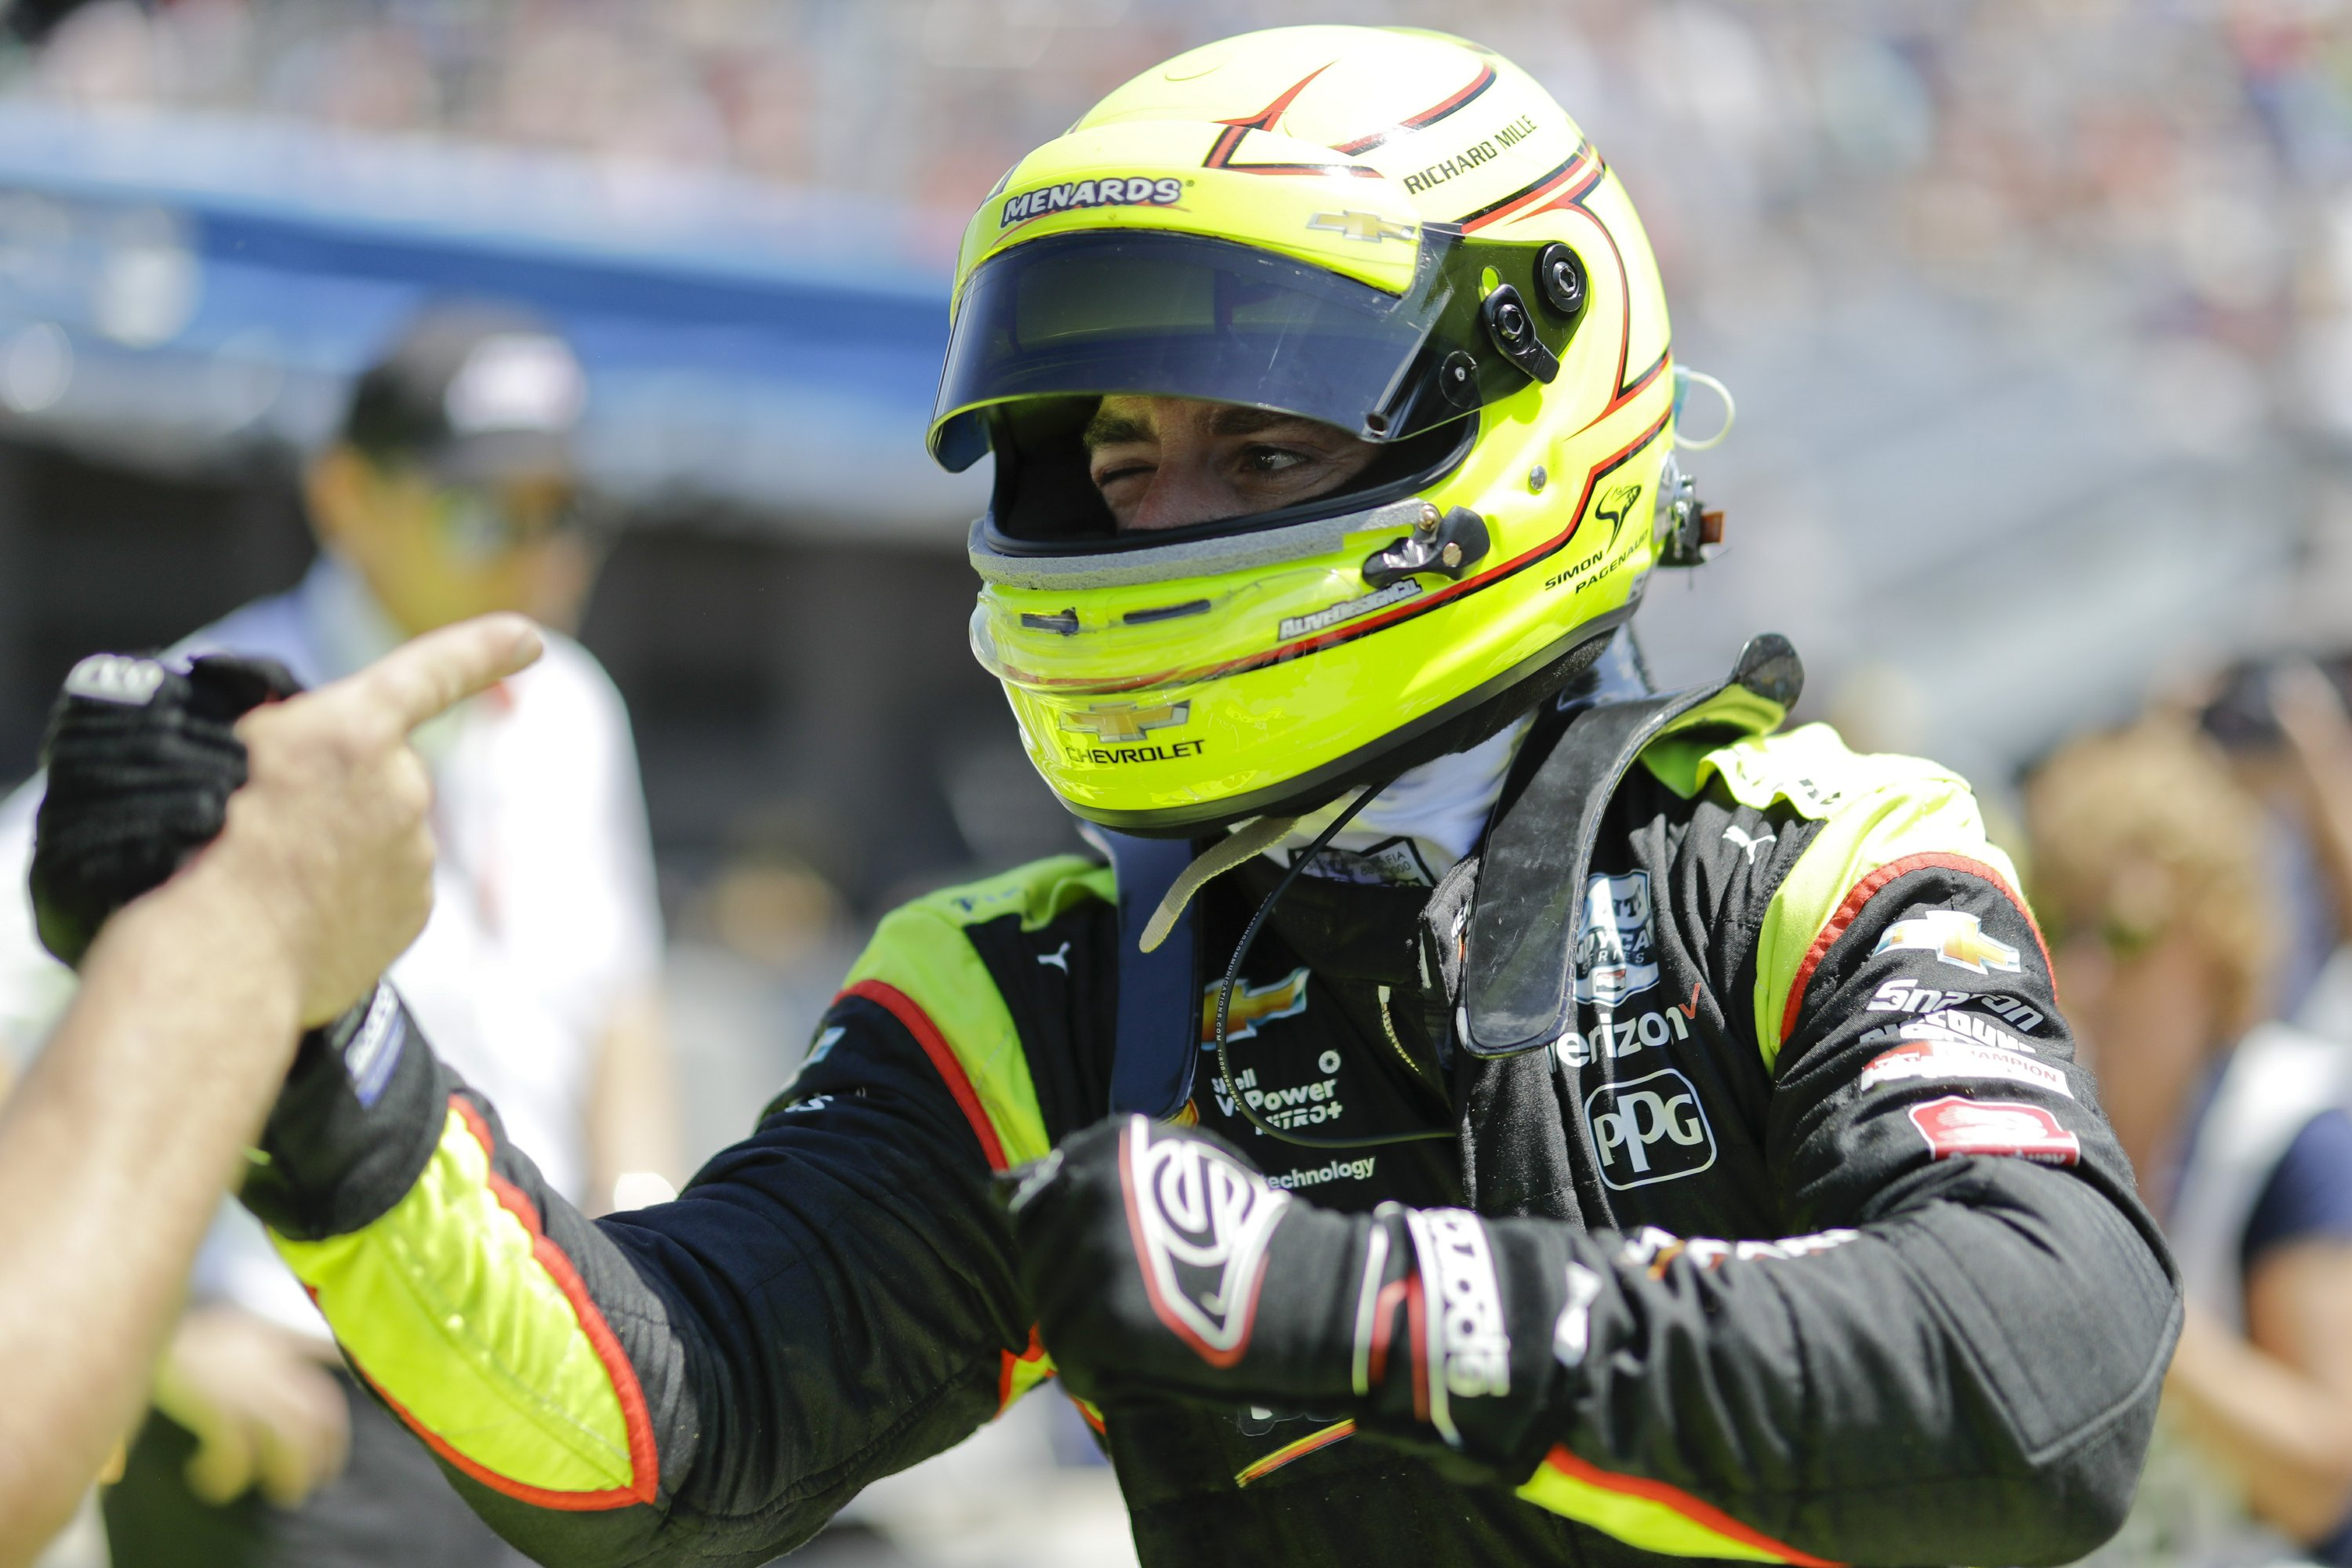 The Latest: Pagenaud fights for job by winning Indy 500 pole